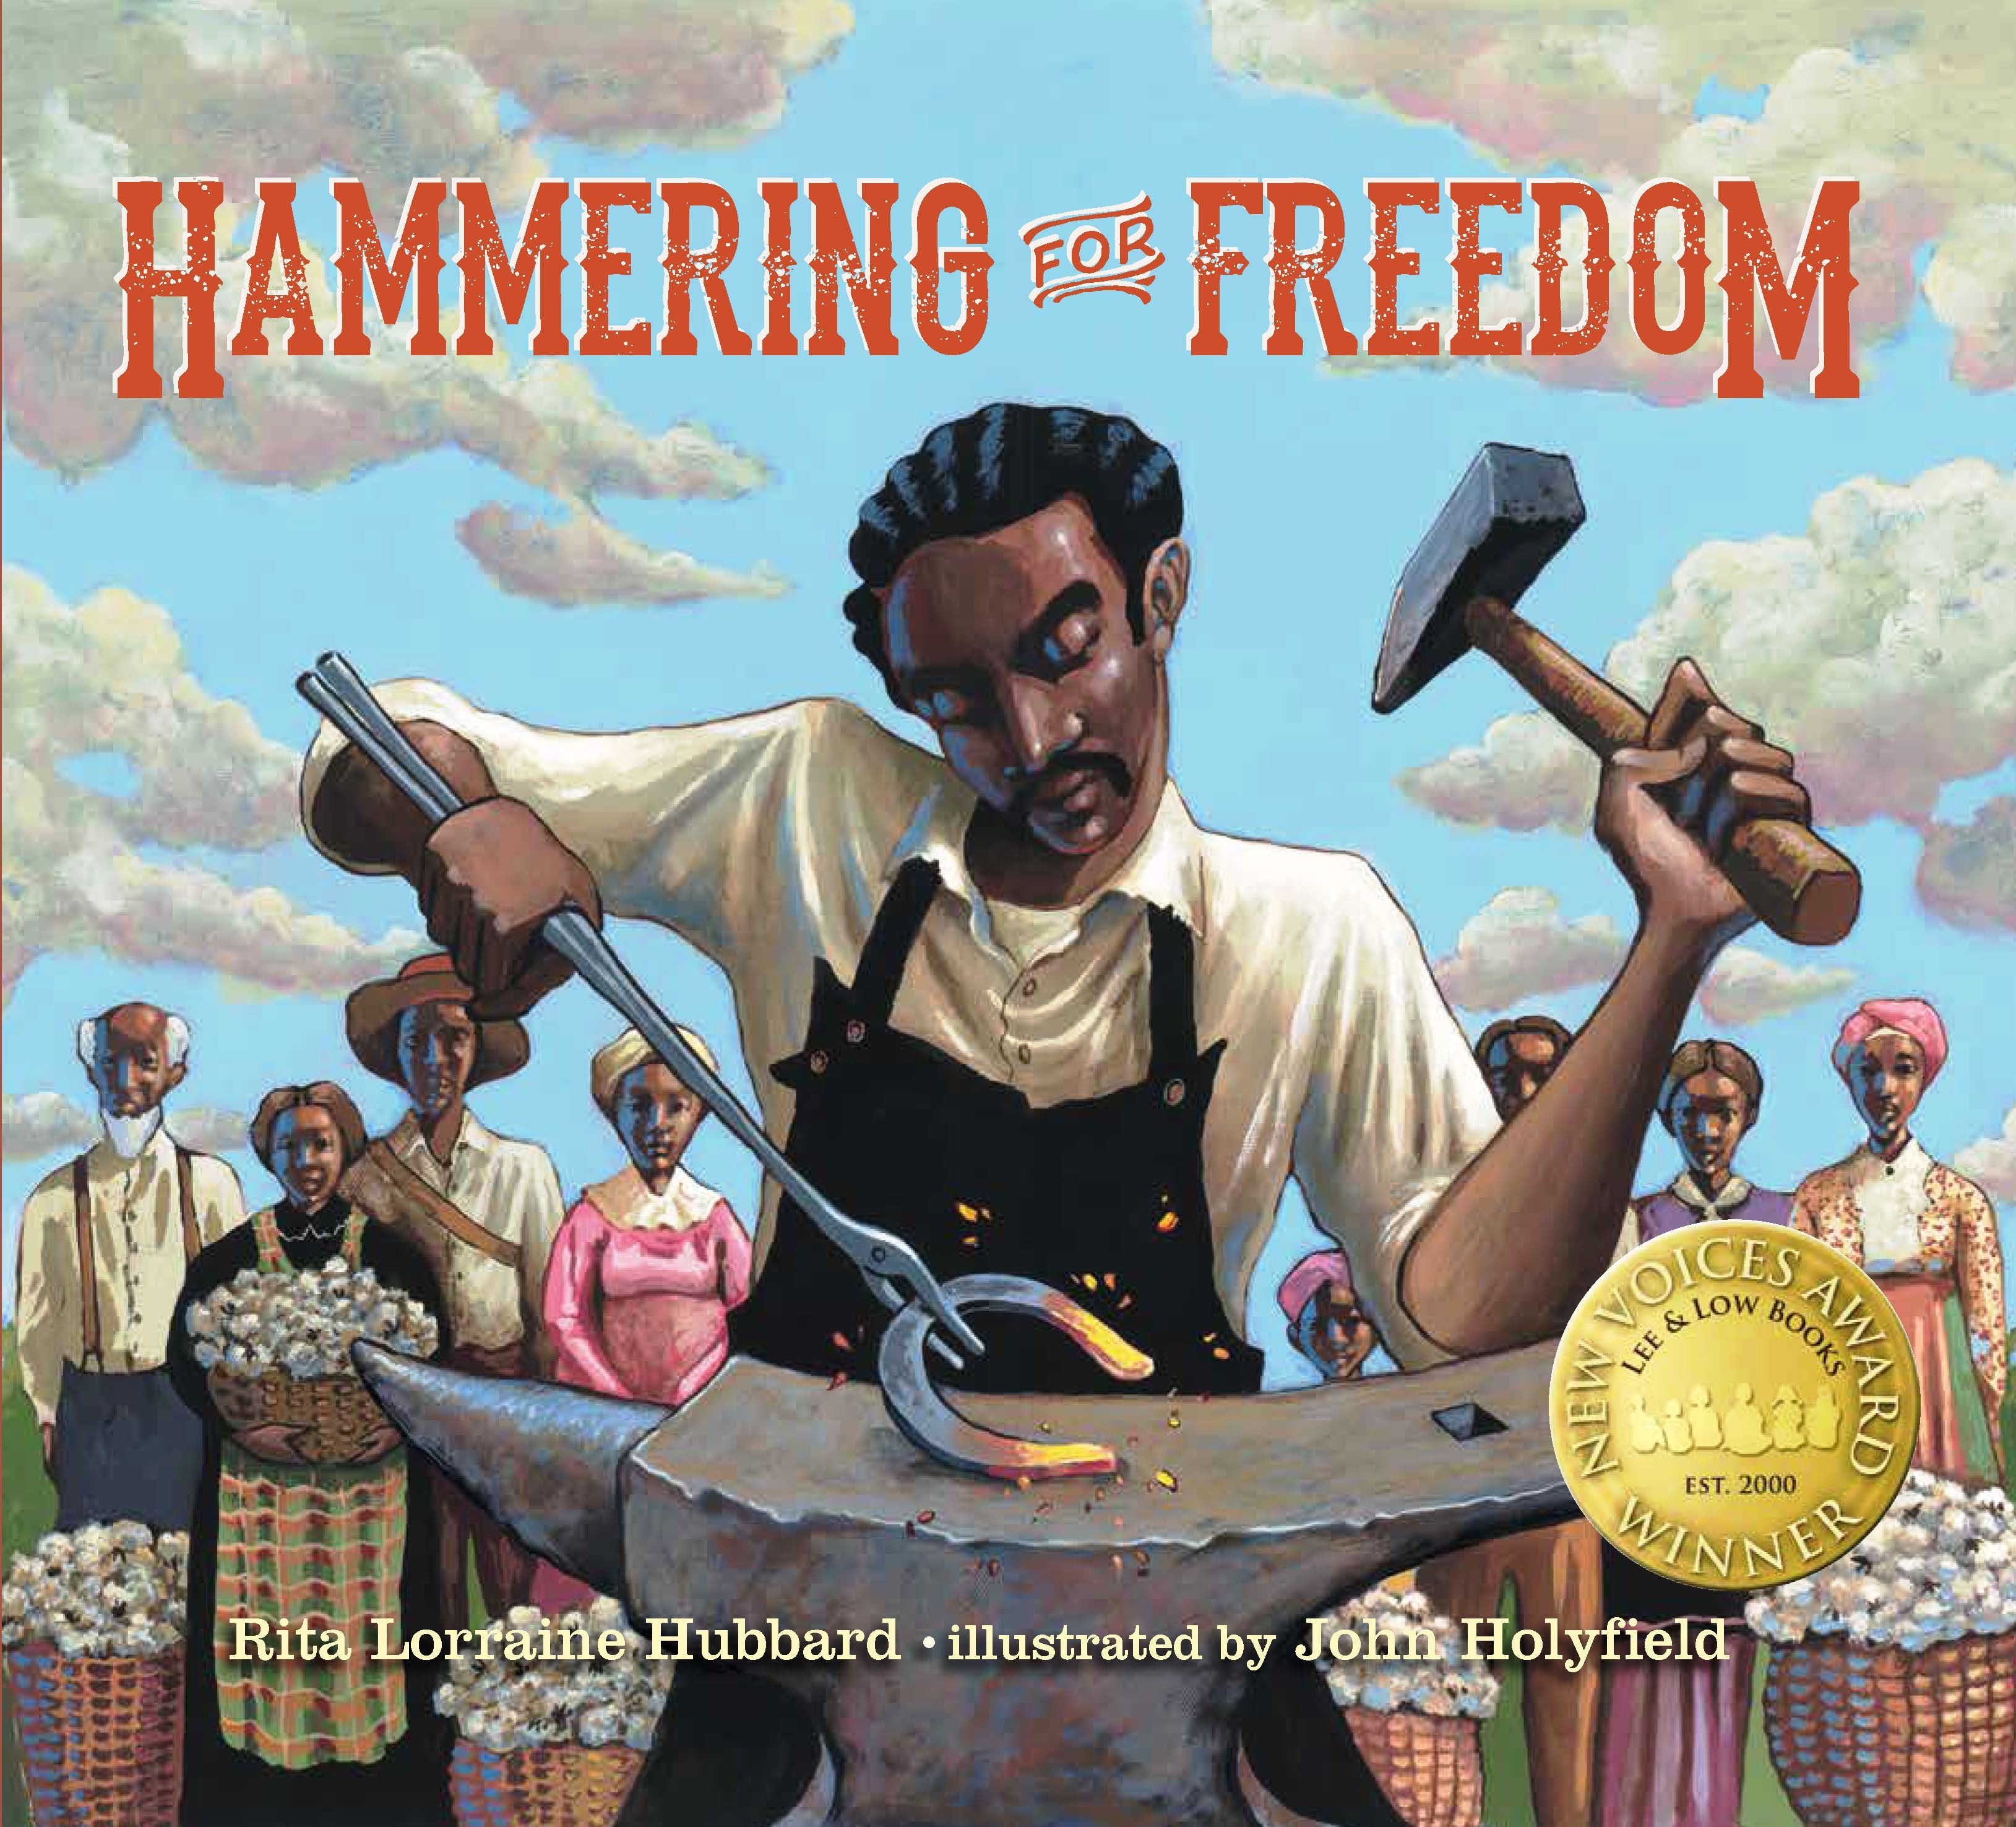 Hammering for Freedom by Rita Hubbard